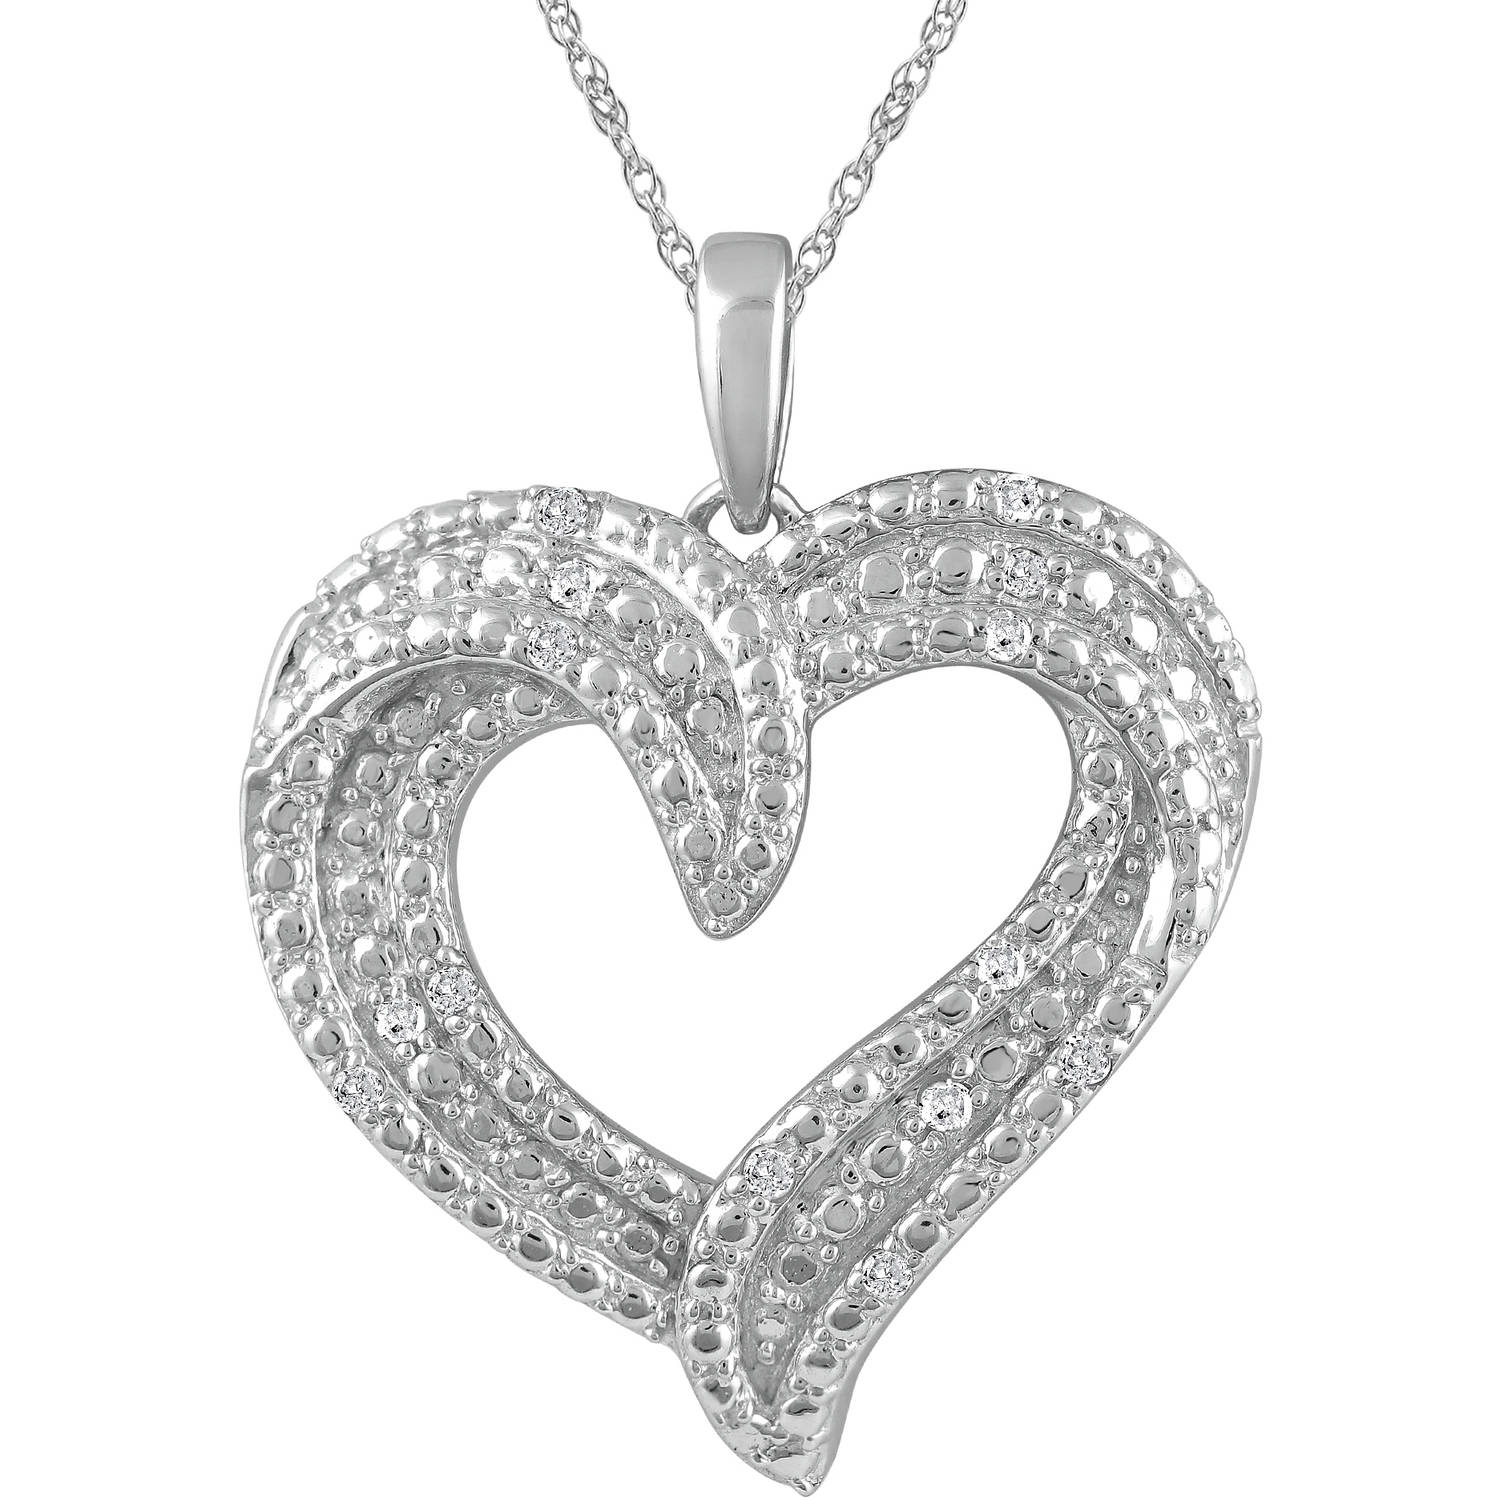 1/10 Carat T.W. Diamond Sterling Silver Heart Pendant with Chain